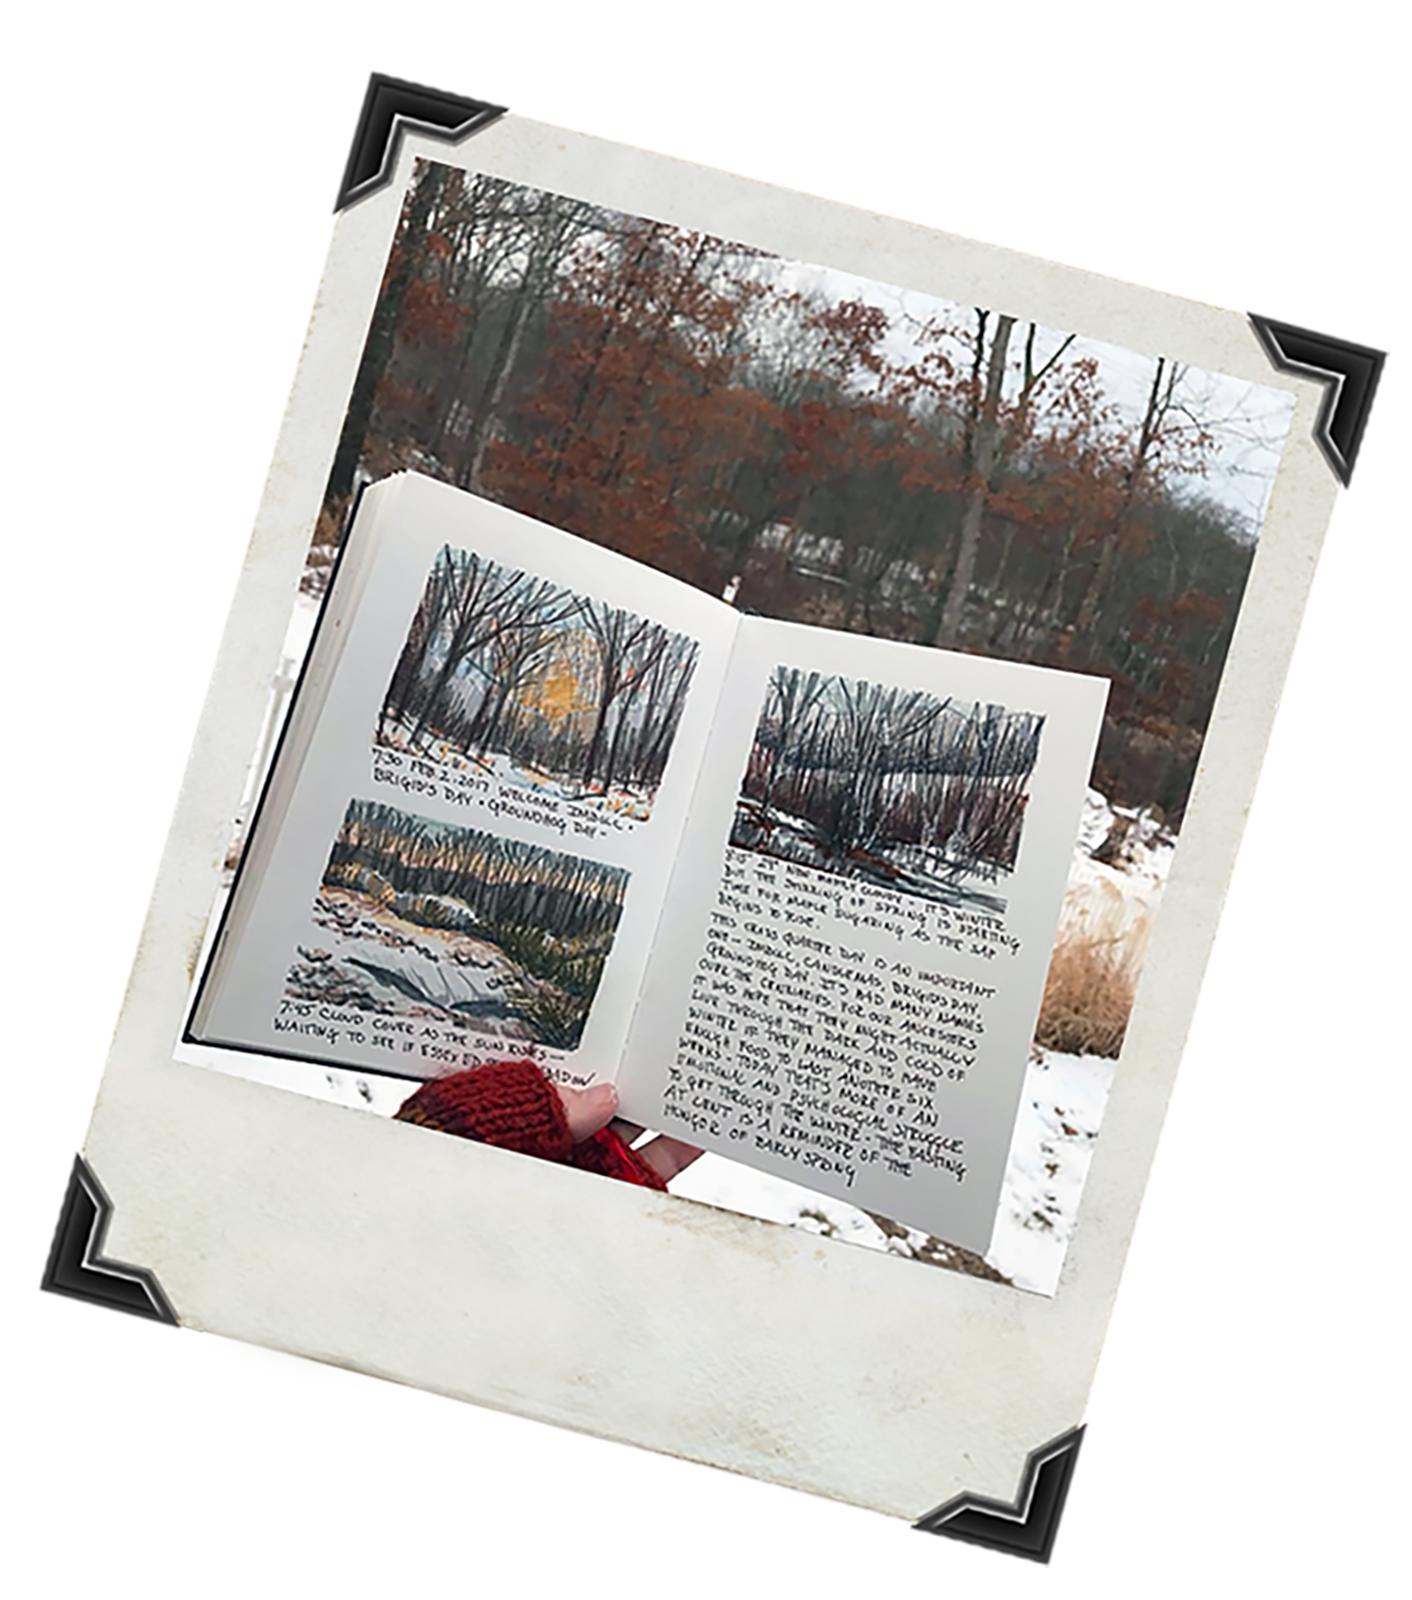 Biggerwinter sketching outside with photoframe